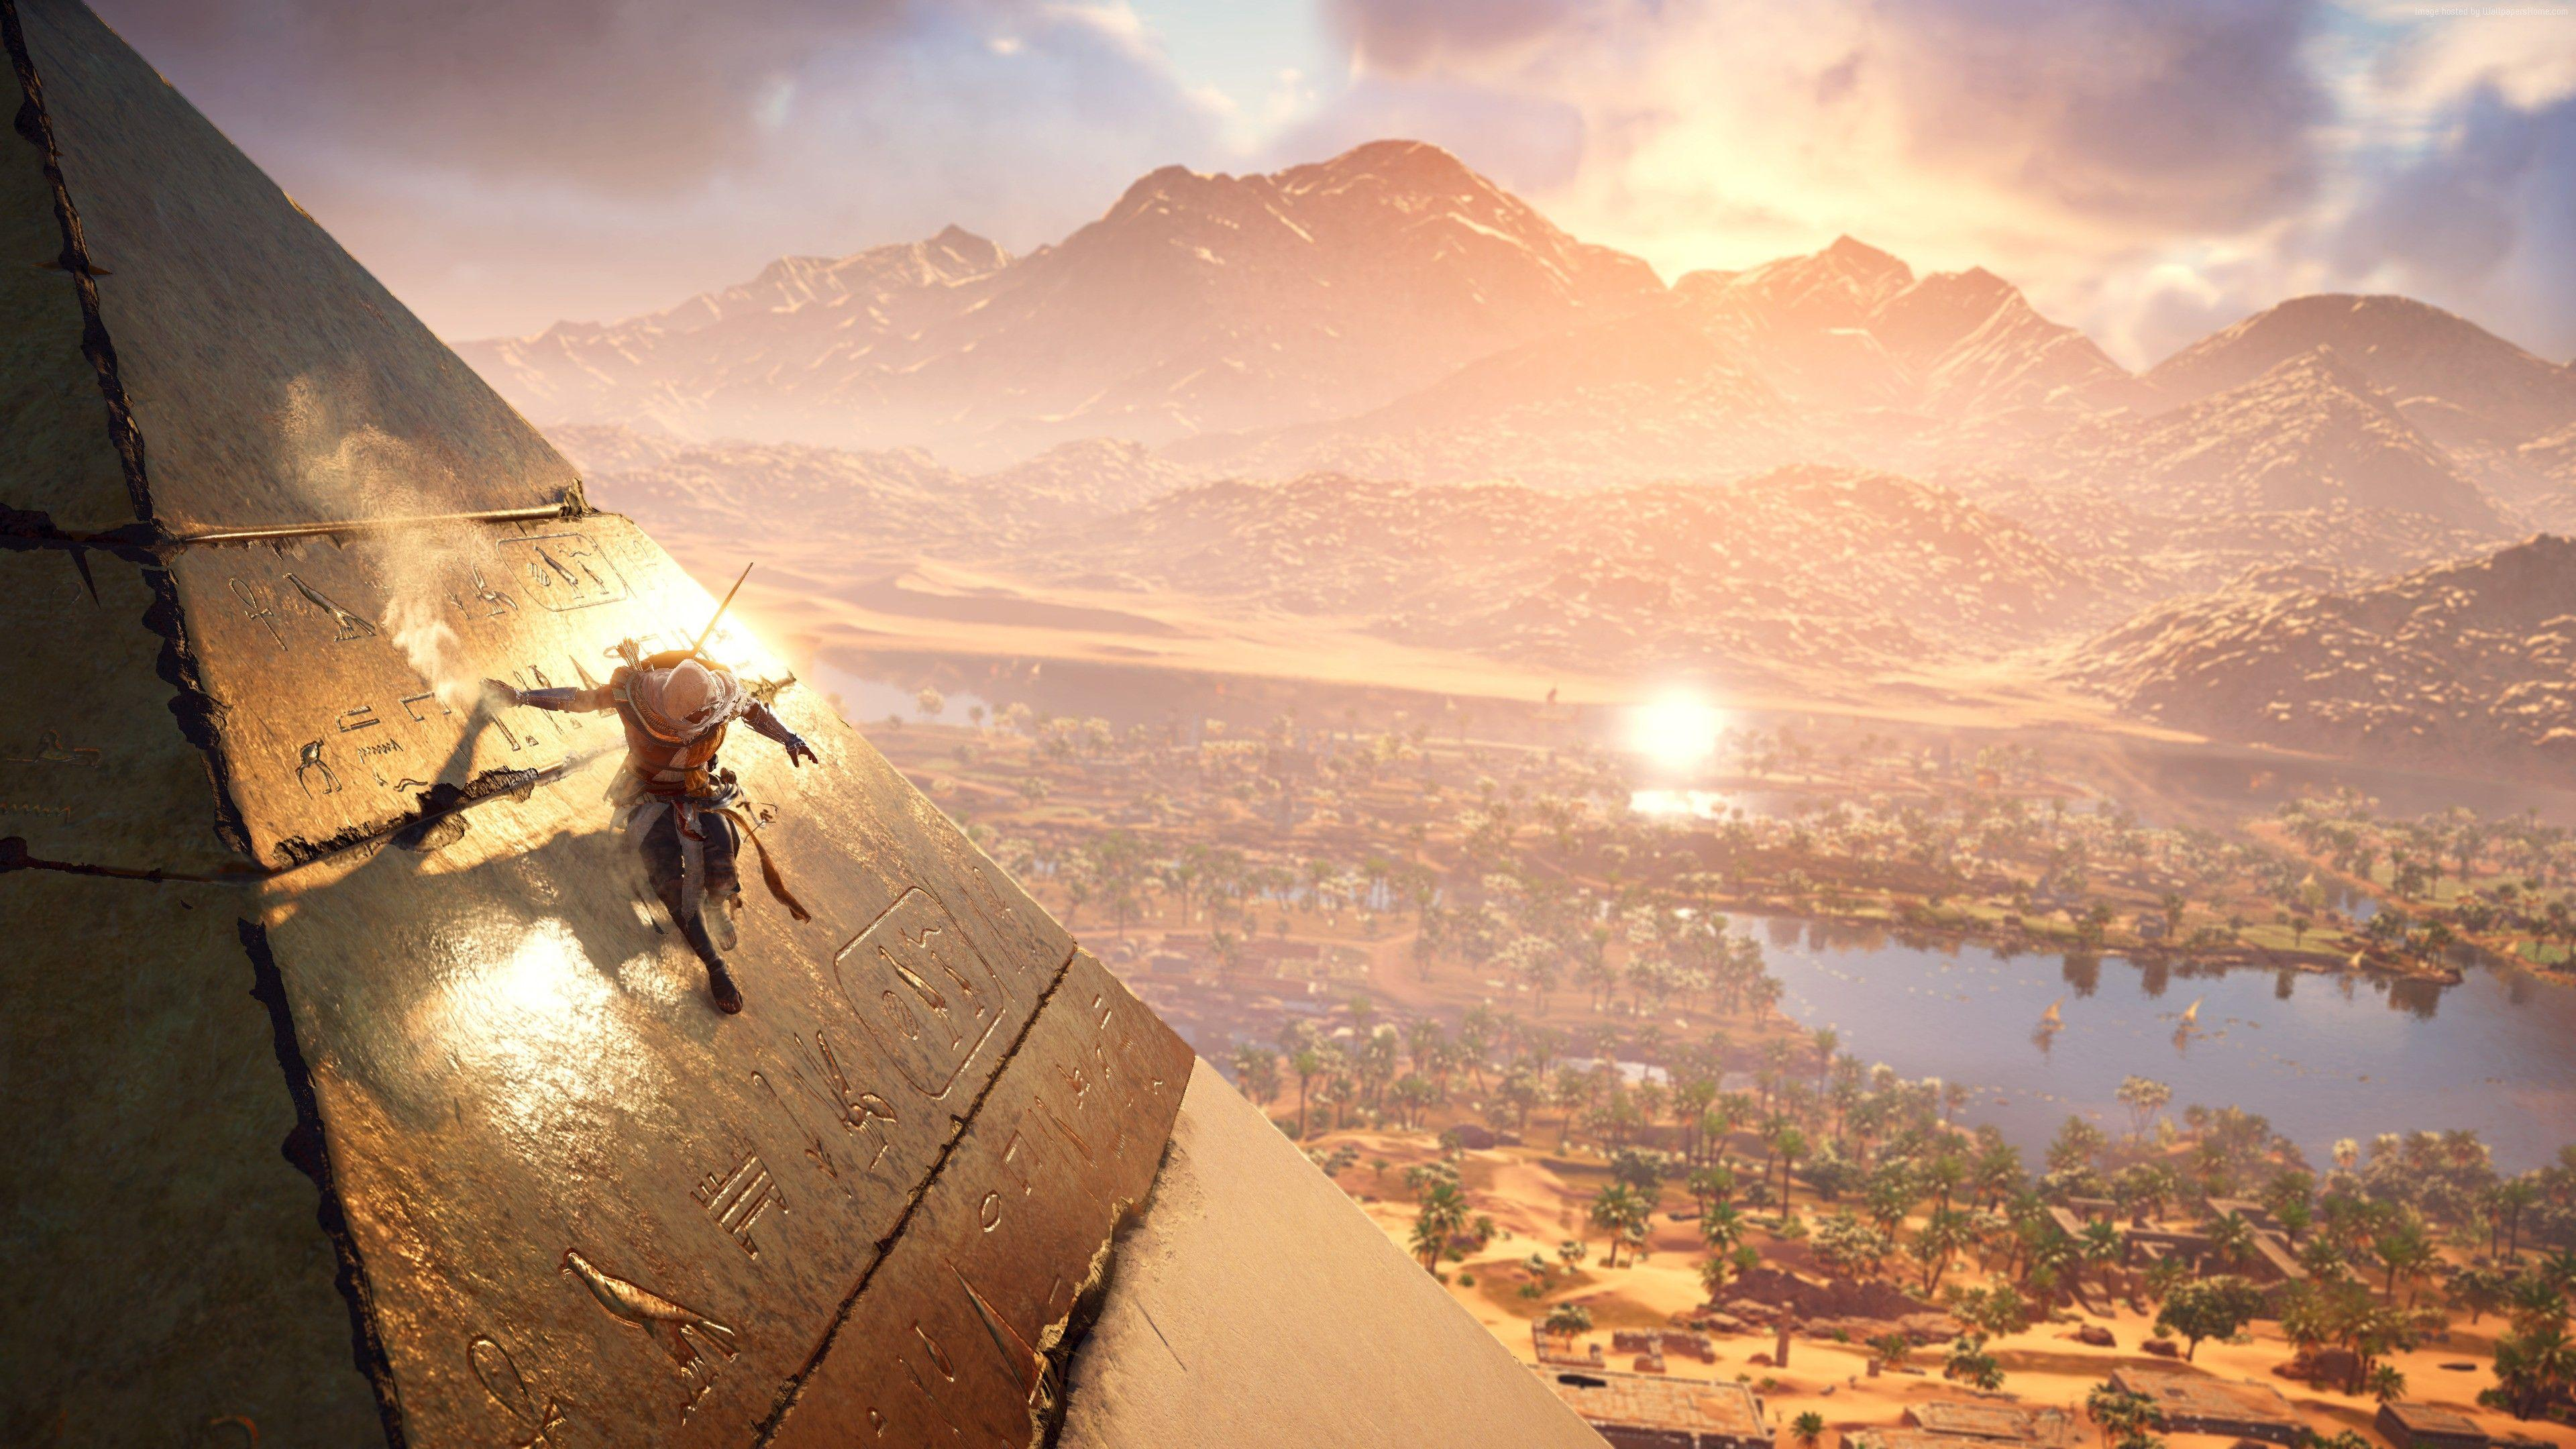 Wallpapers Assassin's Creed Origins, 4k, E3 2017, screenshot, Games